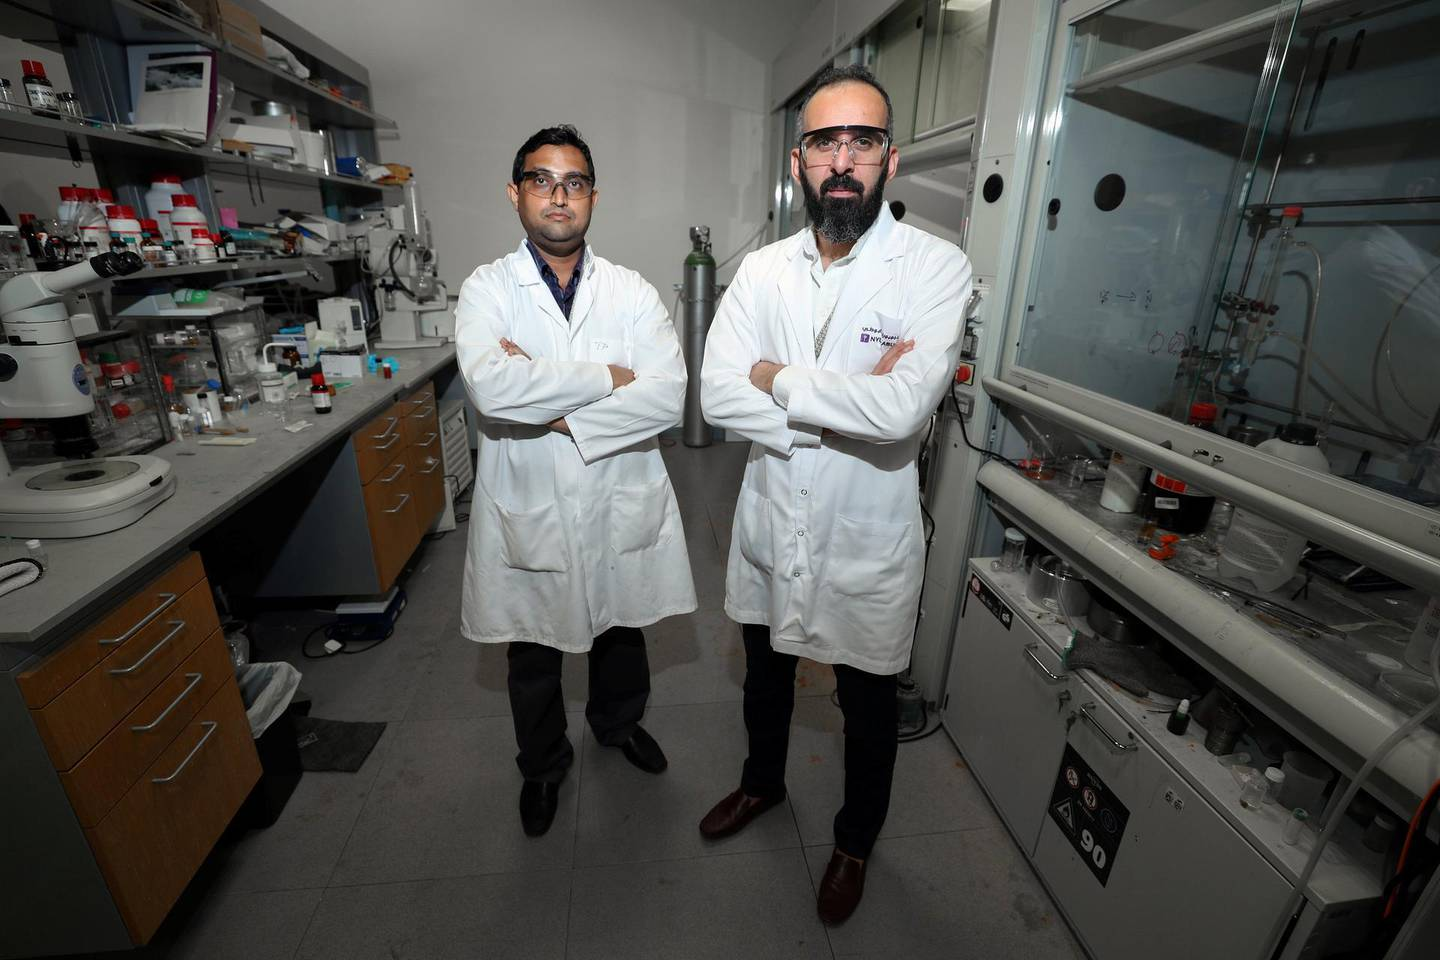 Abu Dhabi, United Arab Emirates - May 22, 2019: An article about research at New York University Abu Dhabi into new ways of delivering anti-cancer drugs into cancer cells. An associate professor at the university, Dr Ali Trabolsi (R), has published a paper showing positive results on cancer cell lines and zebrafish embryos using a type of anti-cancer molecule that his lab has developed. With Prakasam Thirumurugan. Wednesday the 22nd of May 2019. NYU Abu Dhabi, Abu Dhabi. Chris Whiteoak / The National